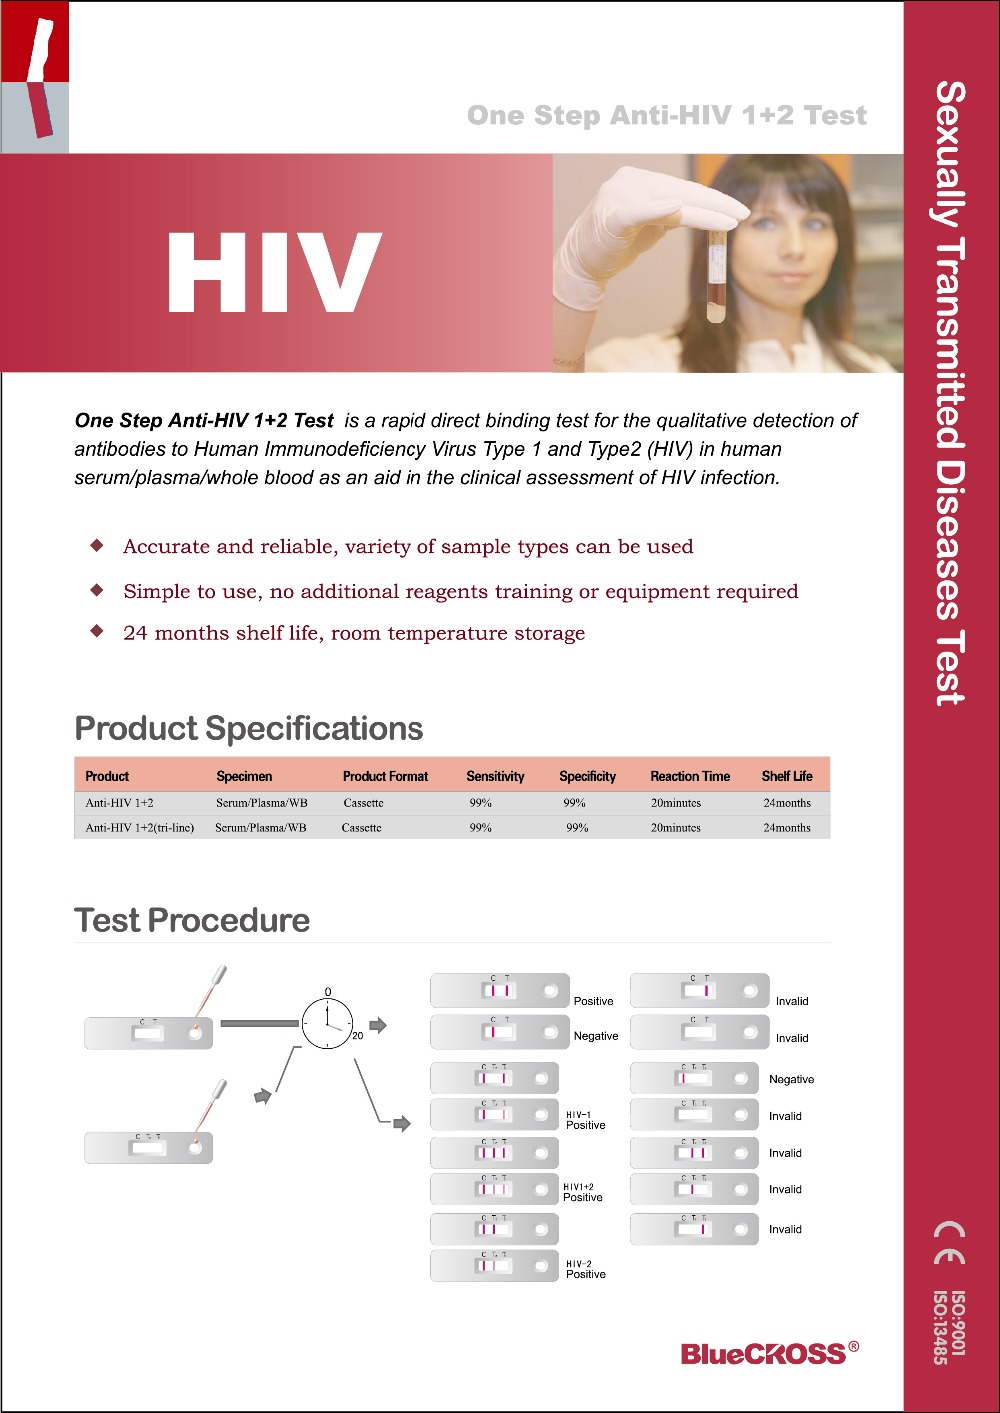 Sexually Transmitted Diseases Test Rapid HIV Test Kits